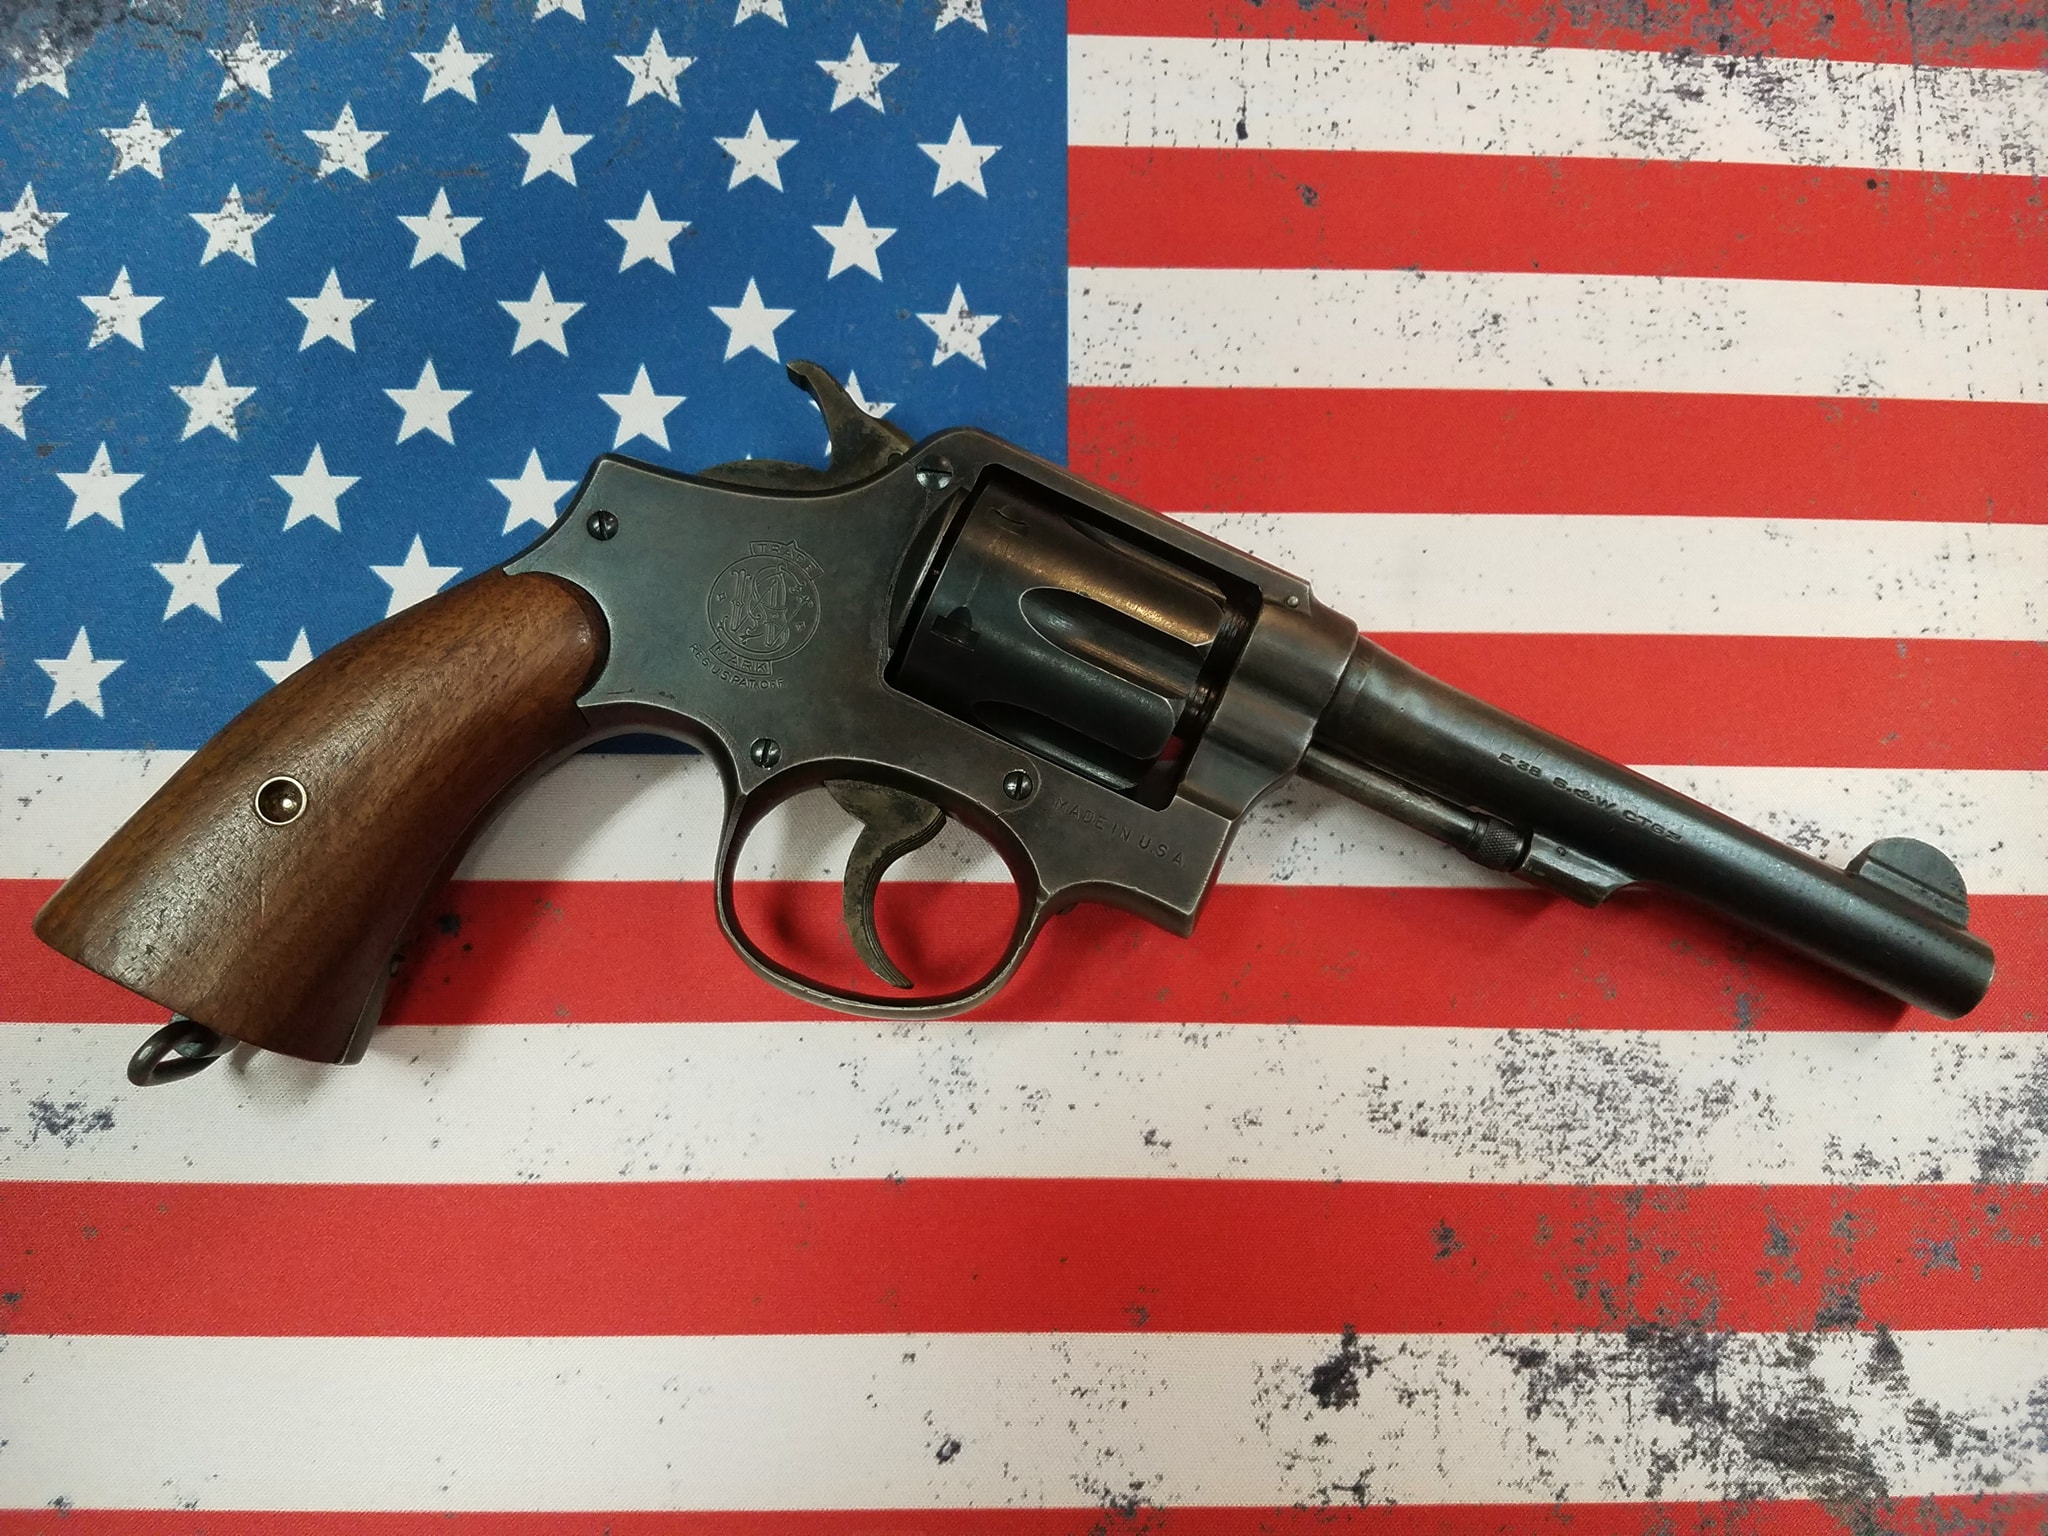 Smith & Wesson Victory Revolver